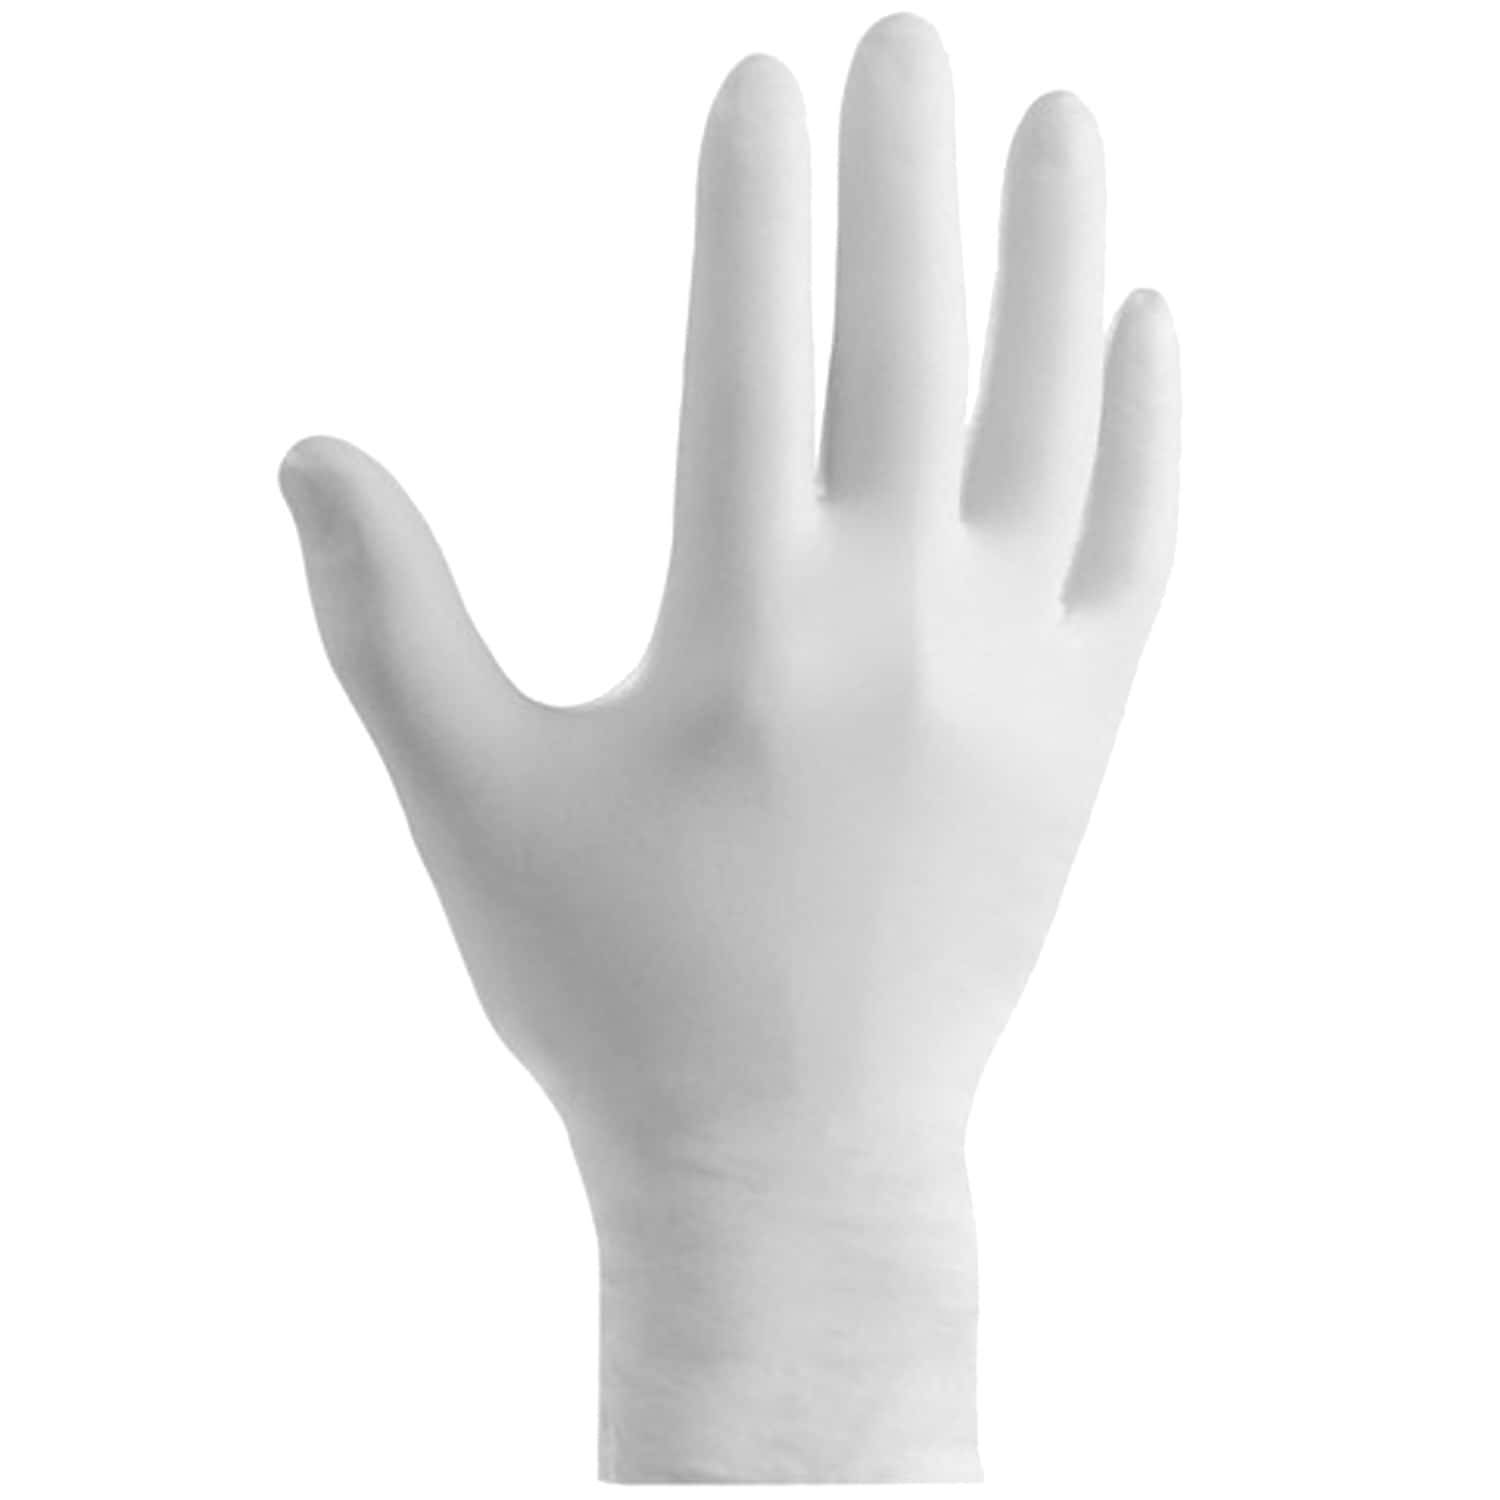 Soft Hands Non-sterile Latex Medical Examination Hand Gloves - Box Of 50 Pairs